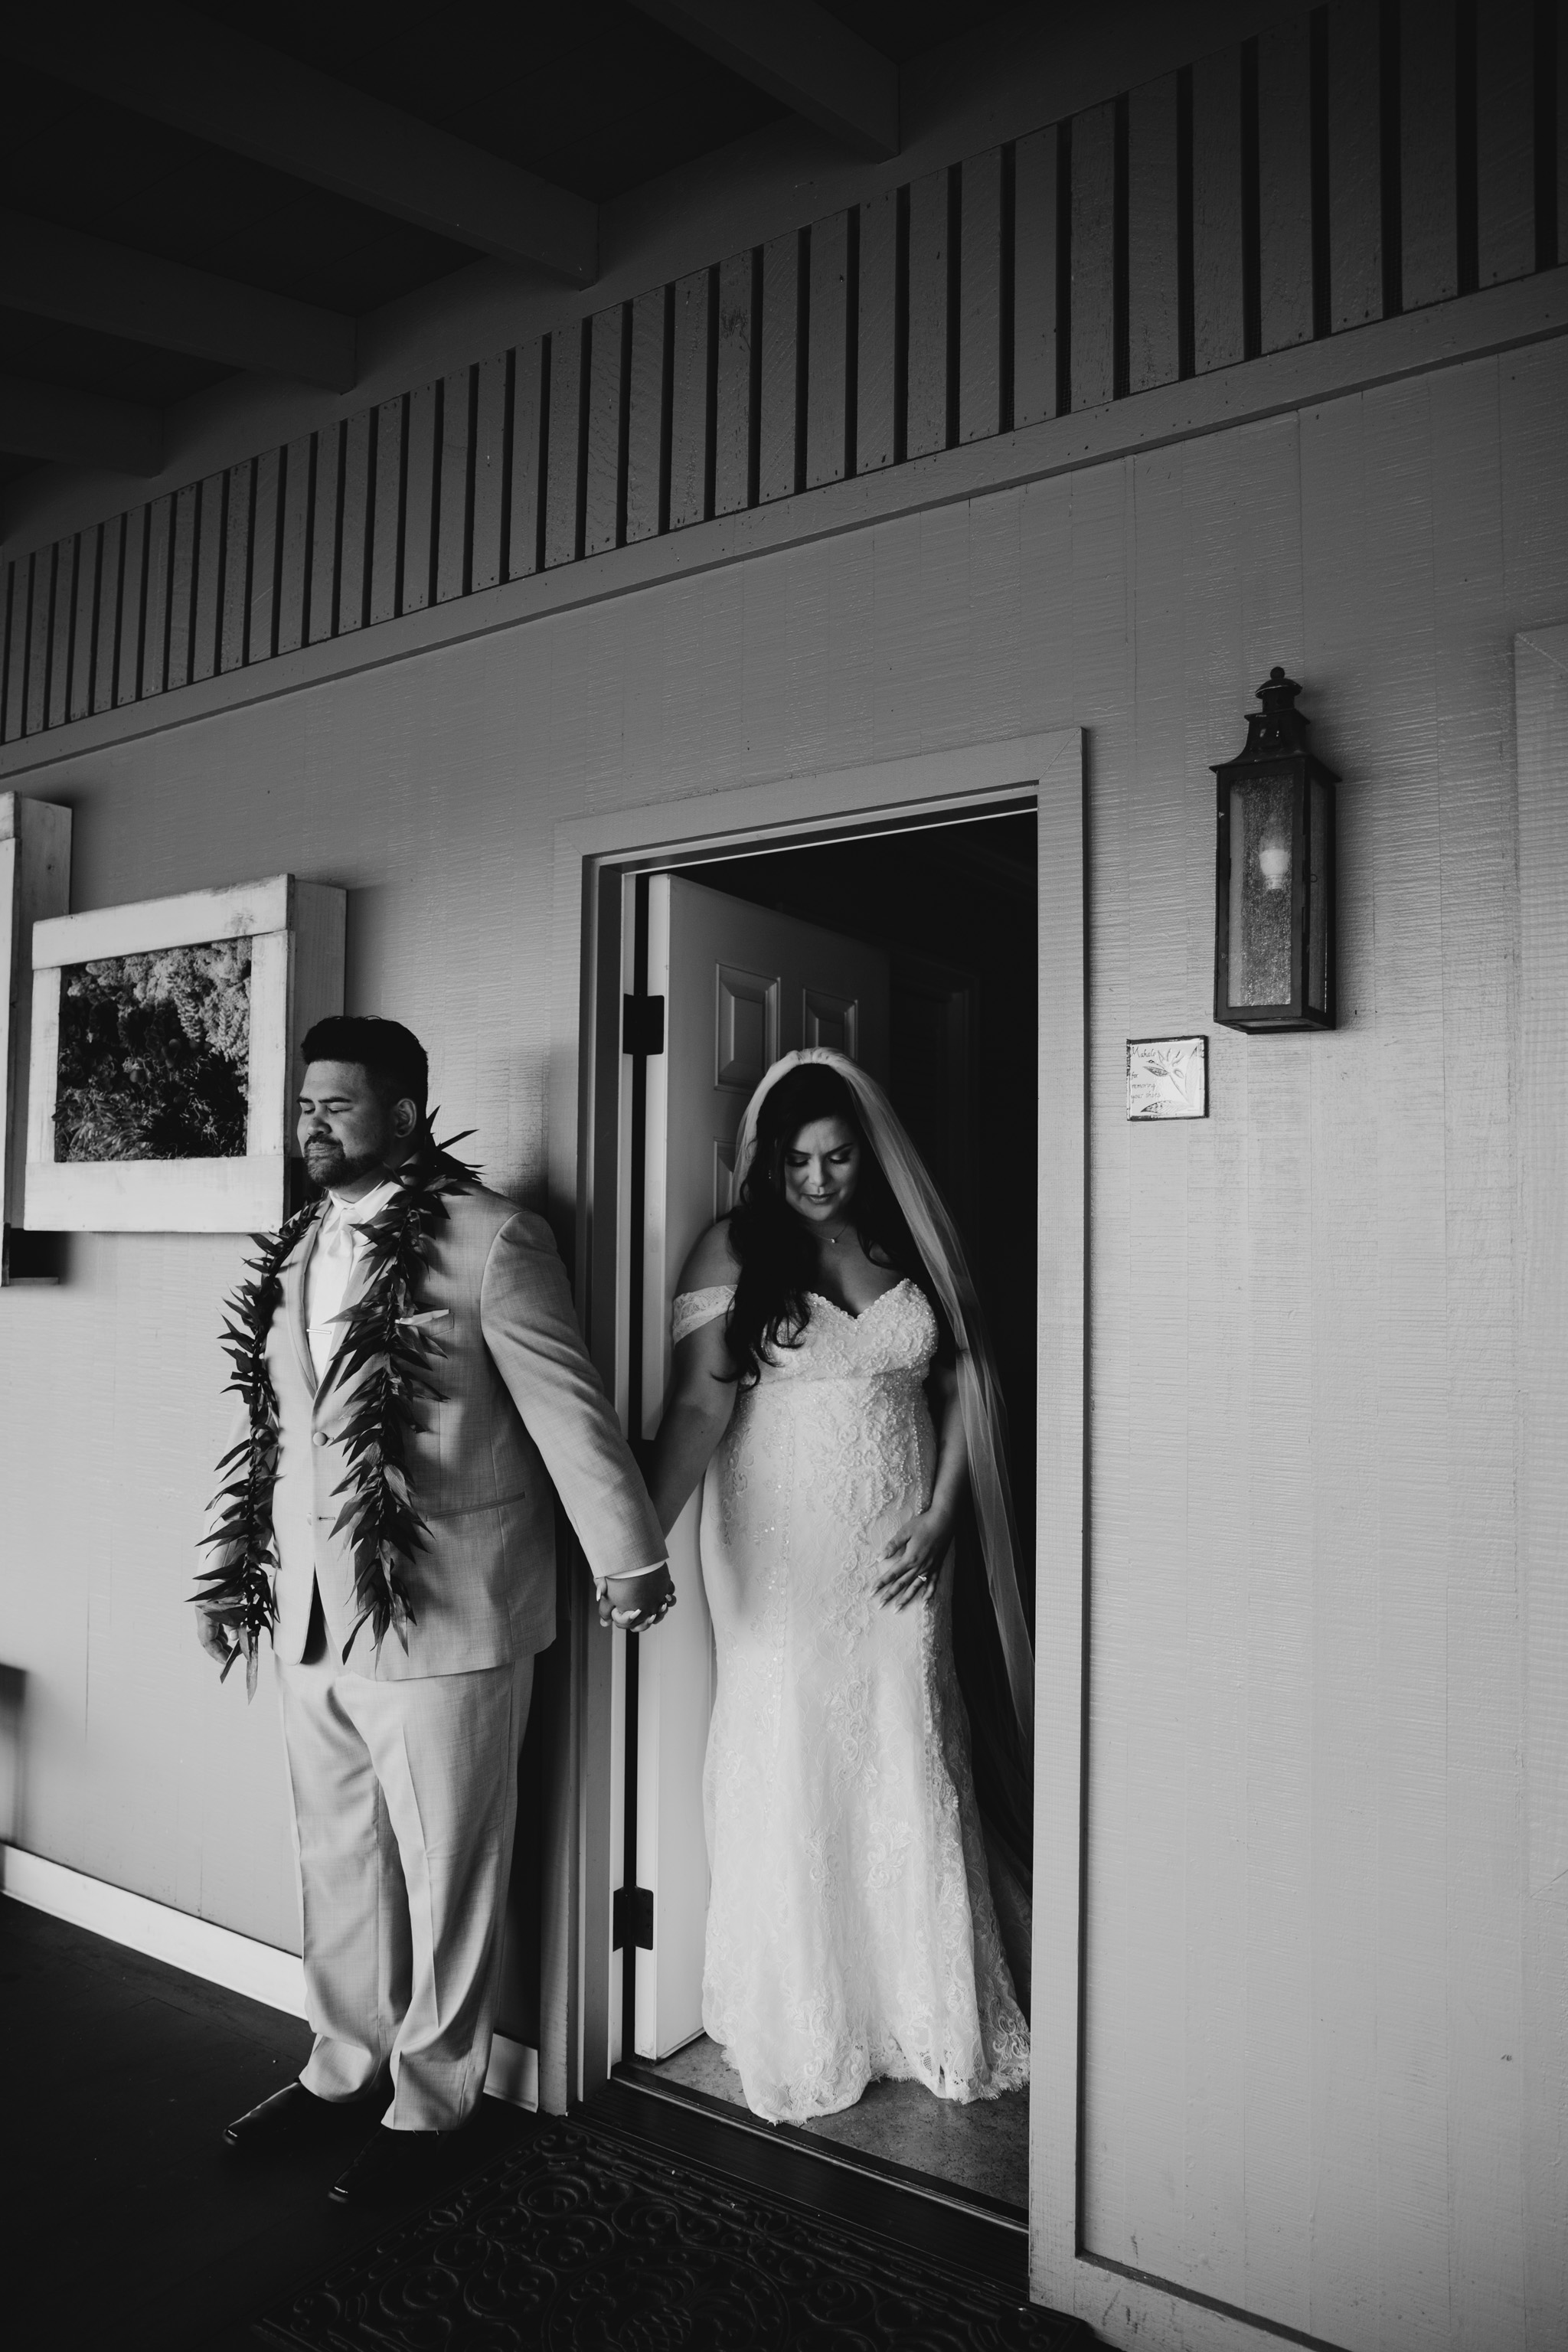 Bride and groom praying together before the wedding - Sunset Ranch Hawaii Wedding By Oahu Wedding Photographer Desiree Leilani